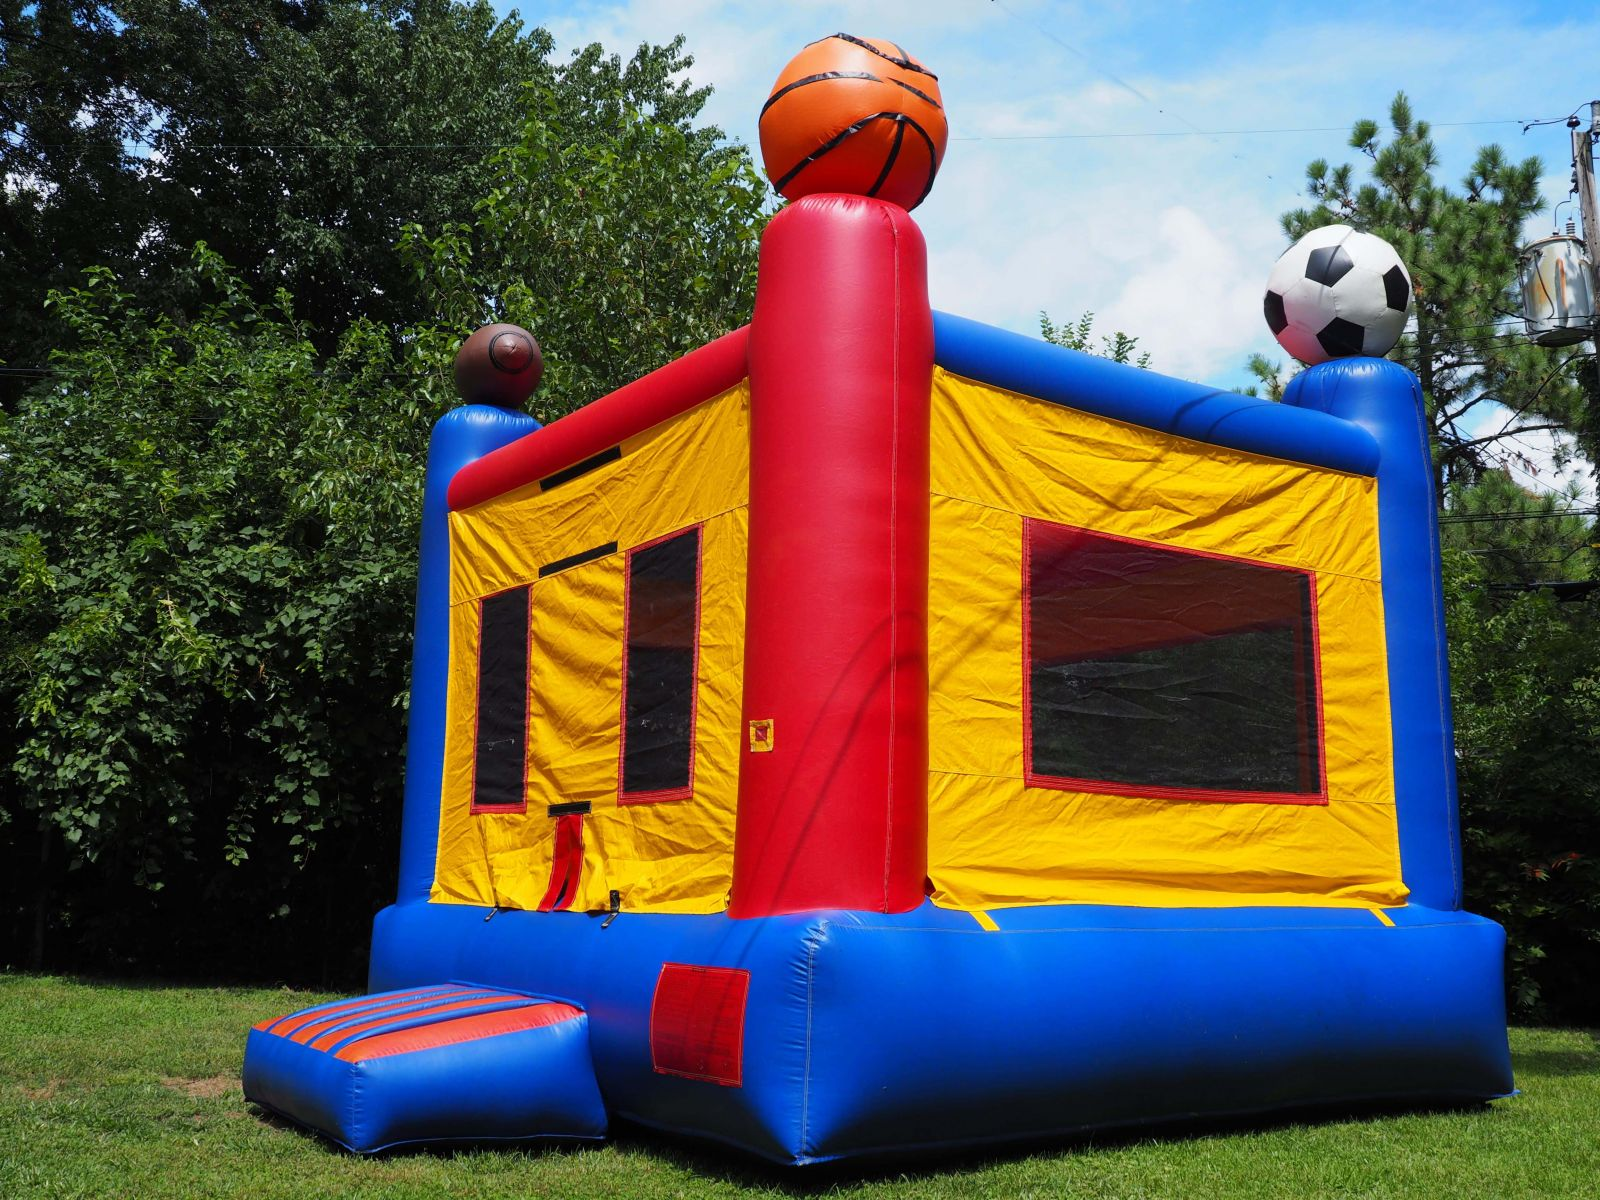 Sports bounce house rental outside on sunny day.